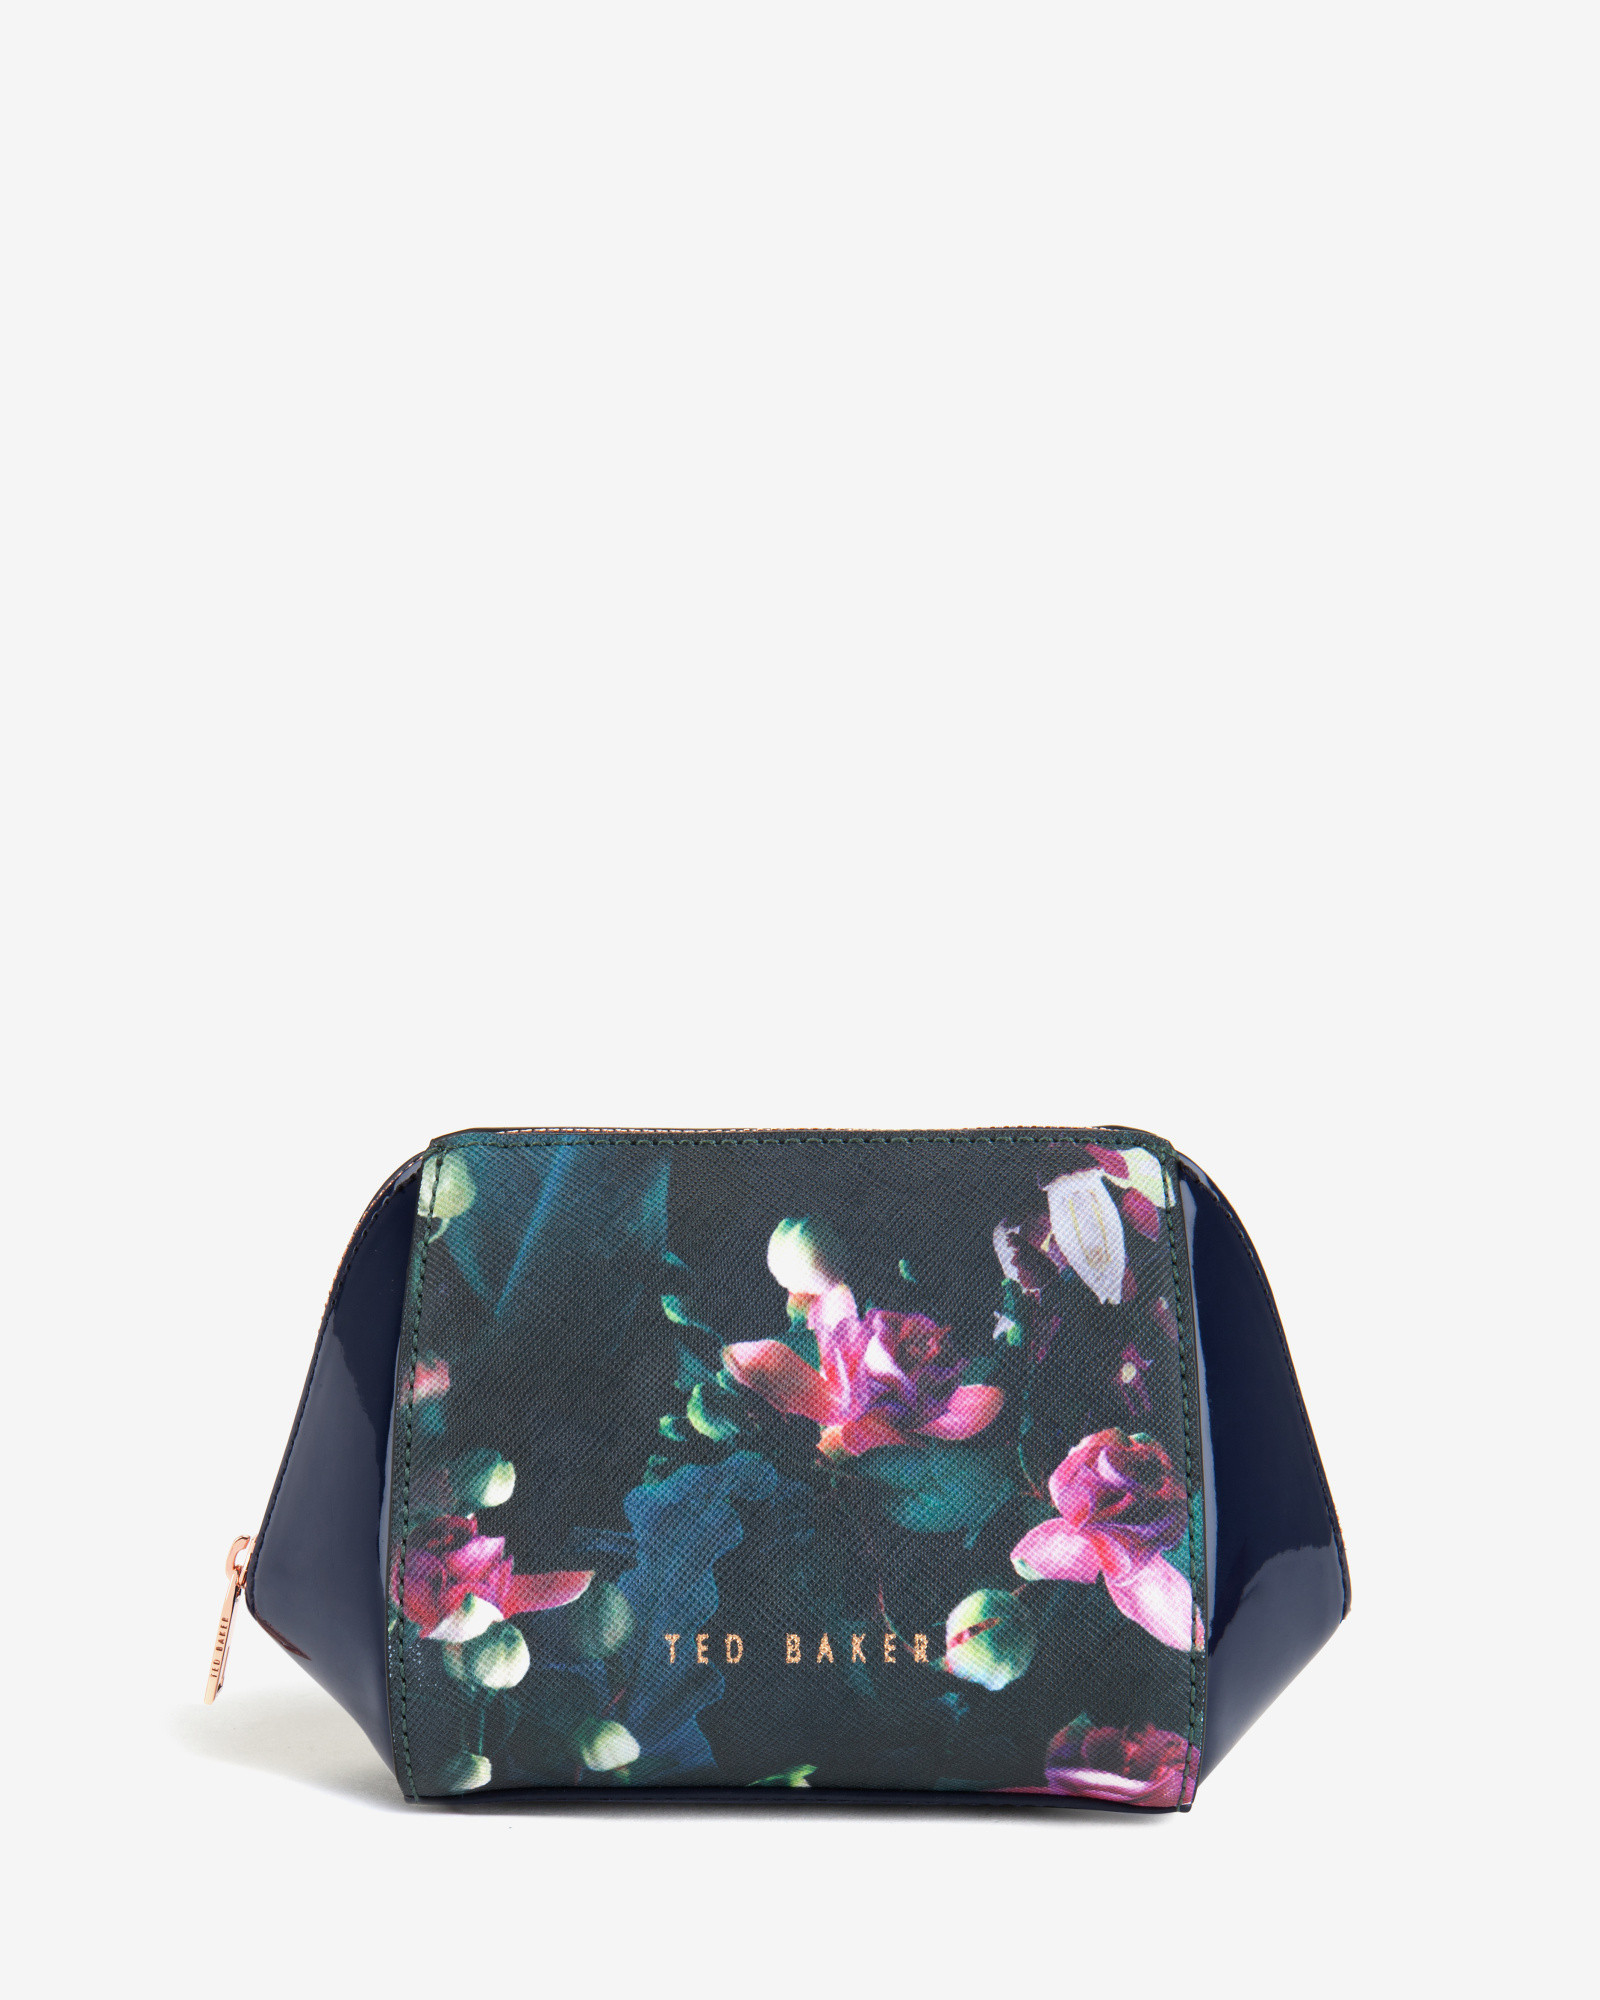 Lyst - Ted Baker Small Fuchsia Floral Wash Bag In Blue